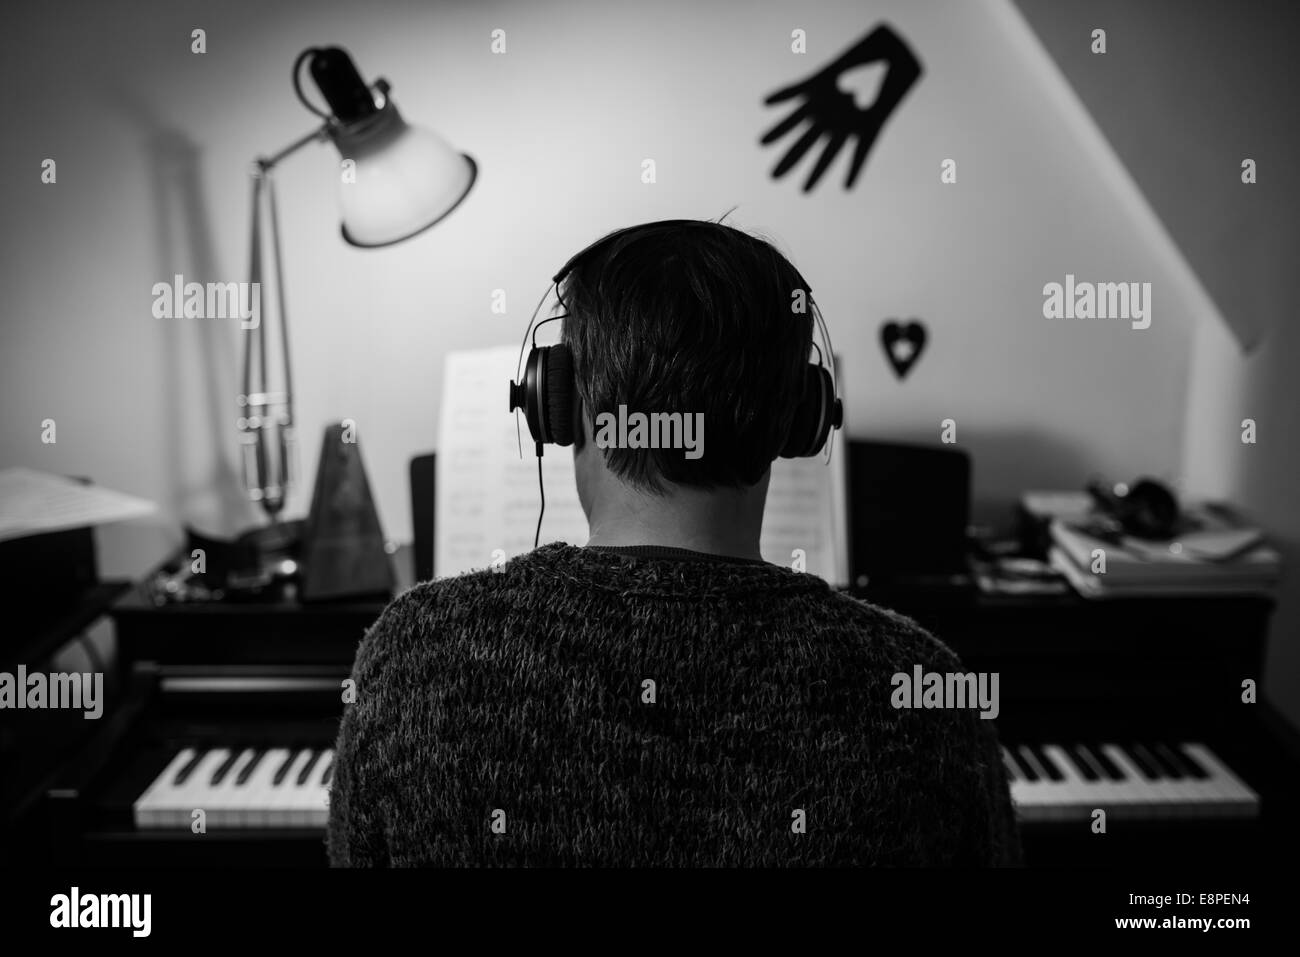 Learning to play the Piano - Stock Image